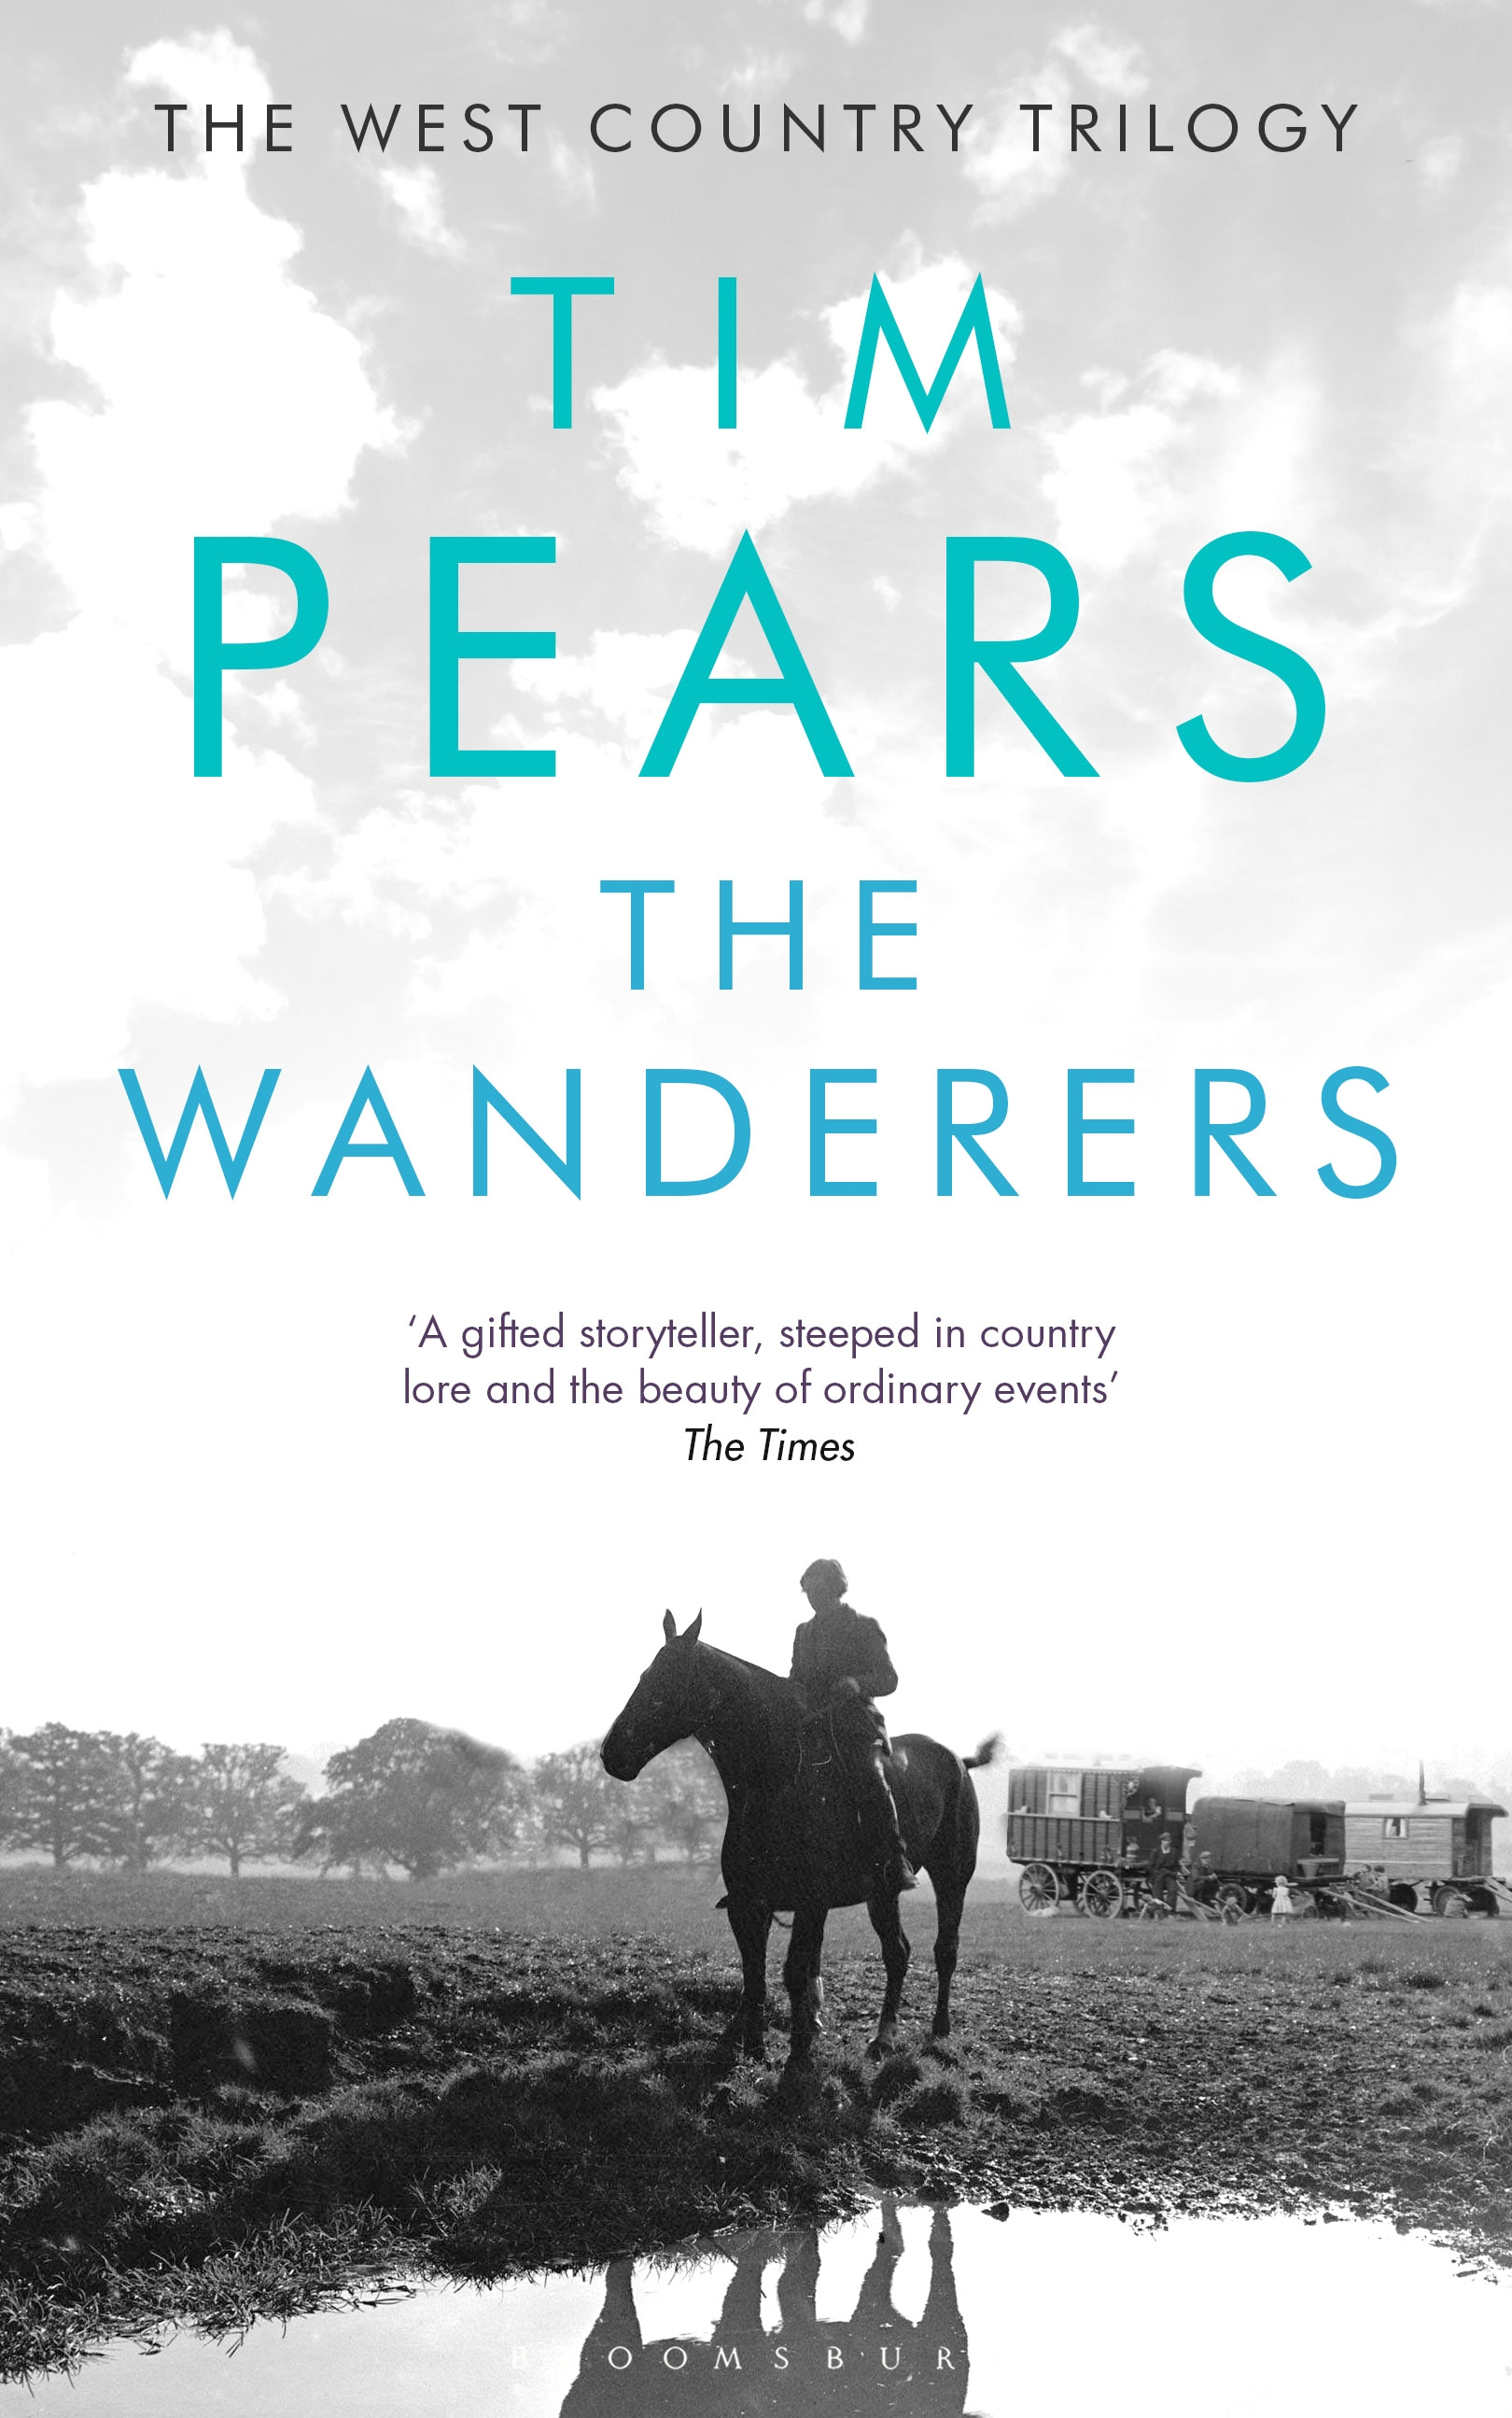 The wanderers by tim pears jacket